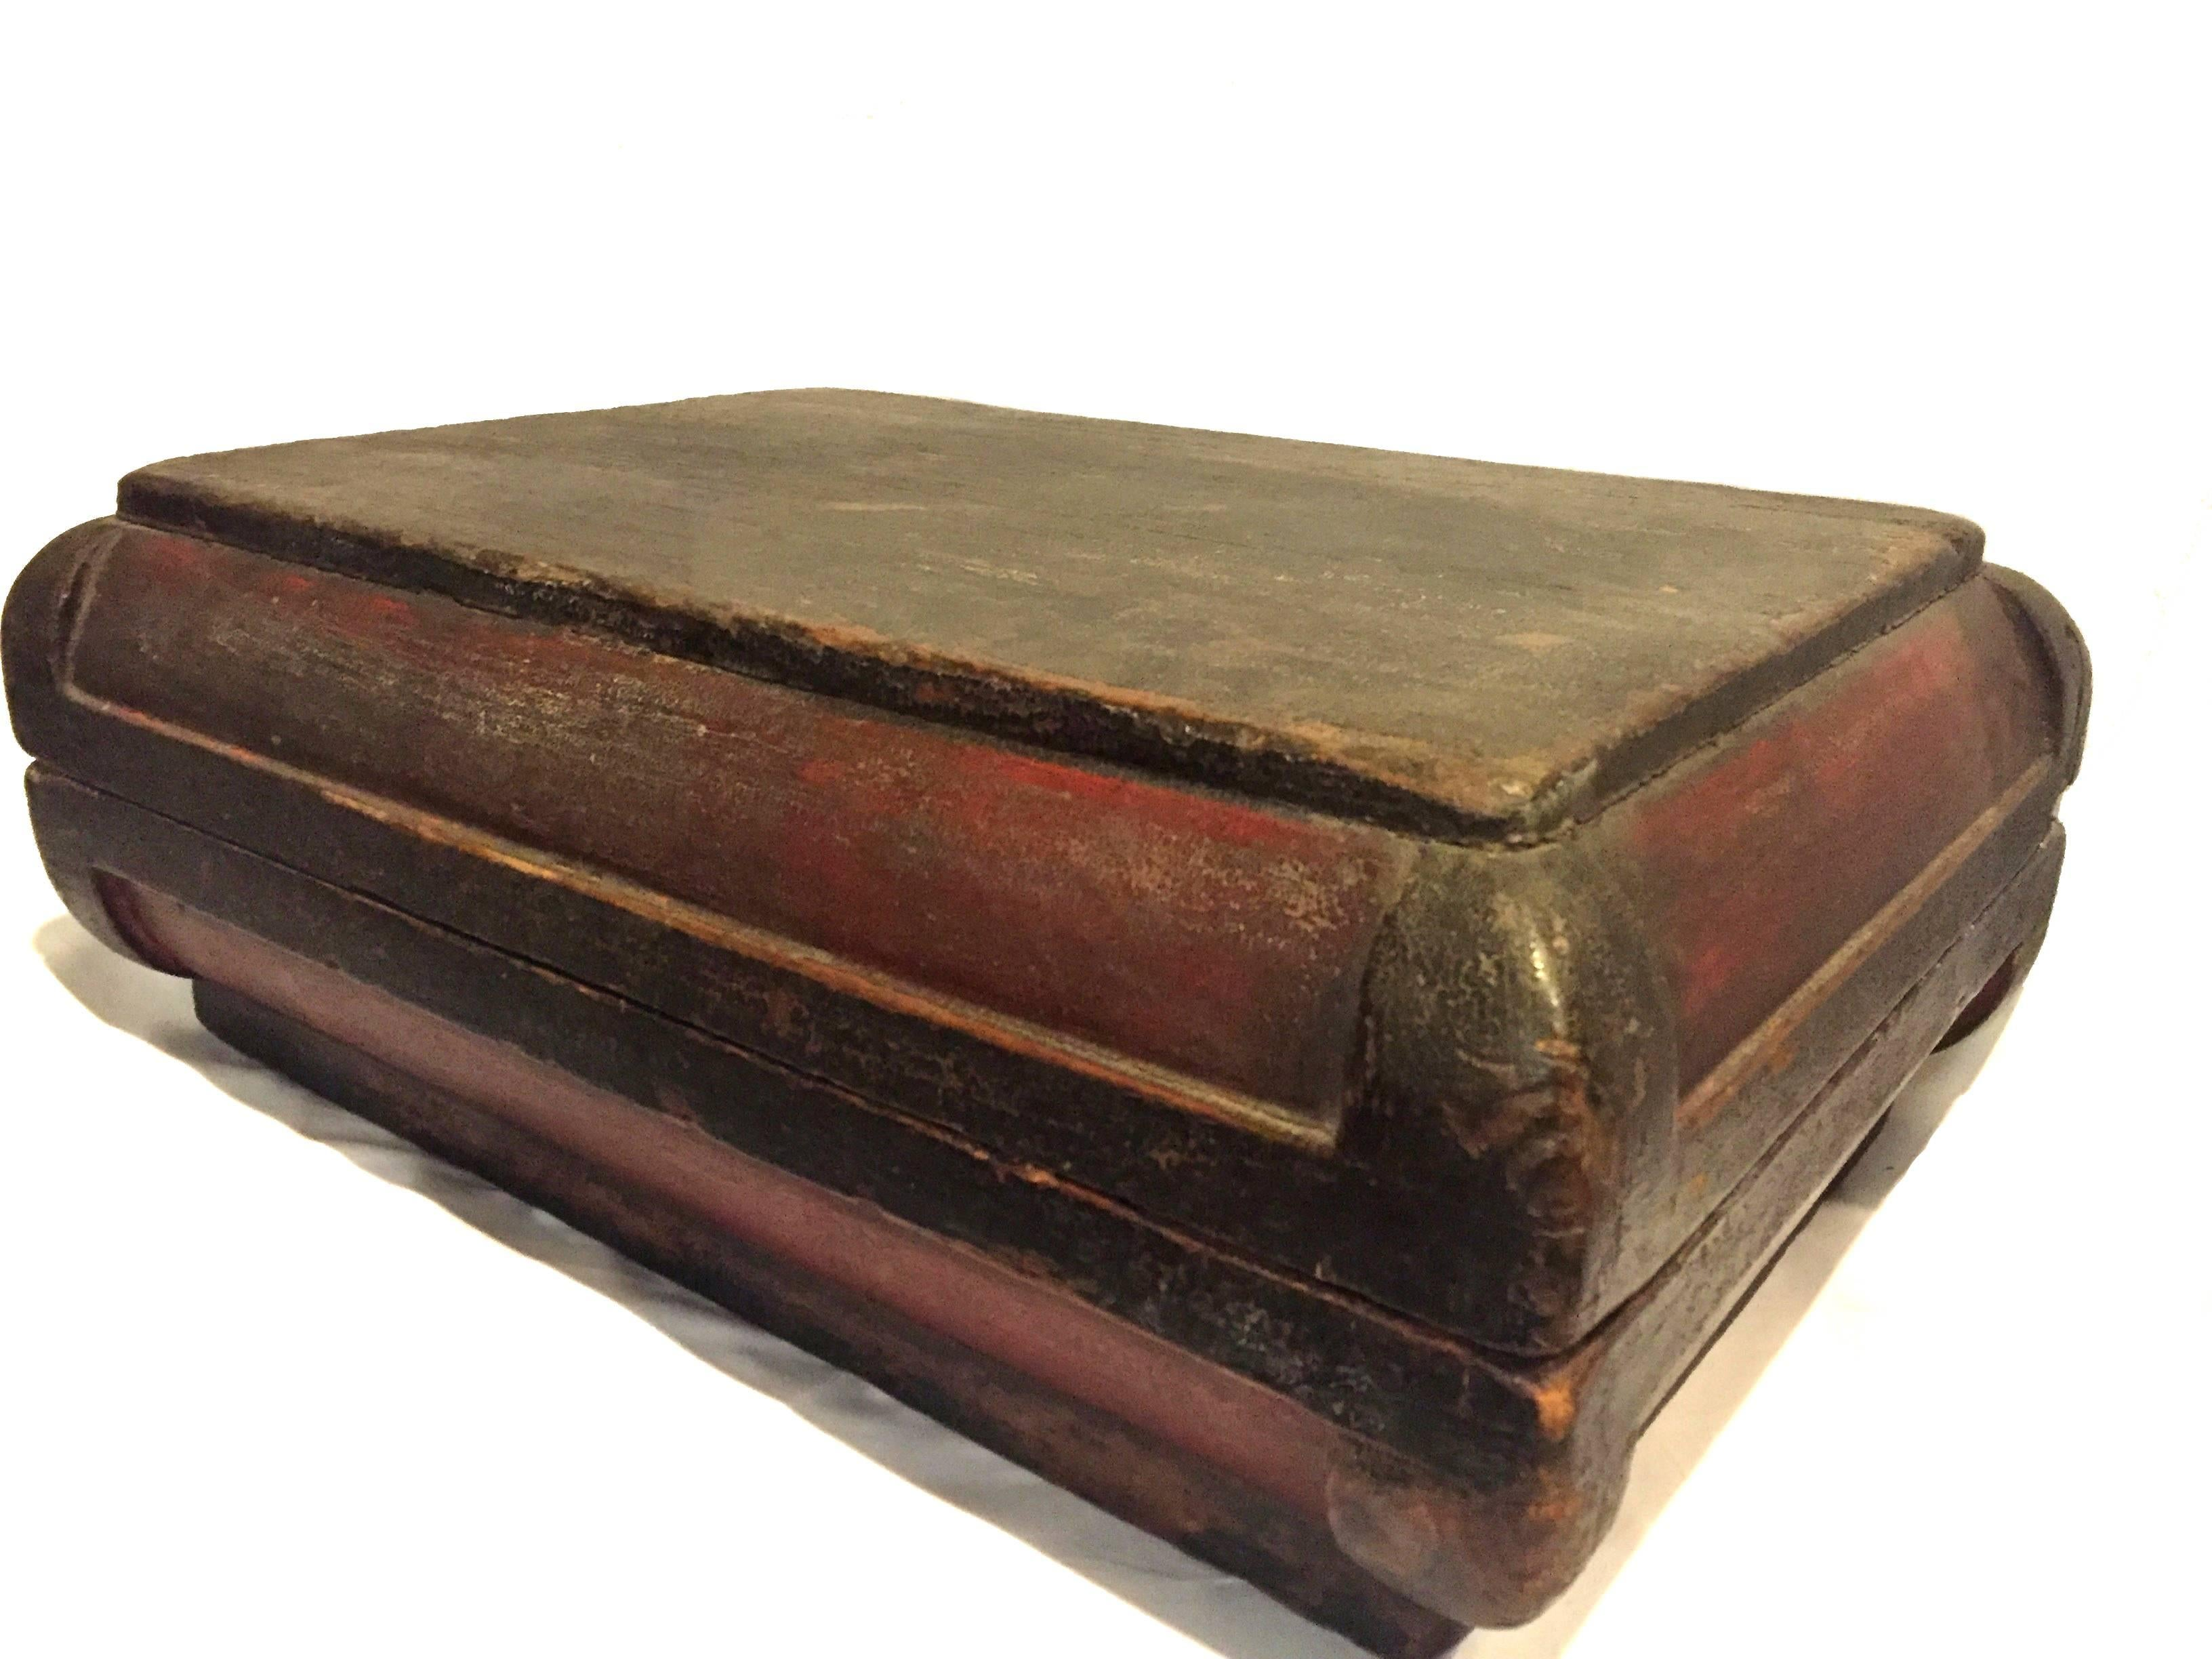 Genial 19th Century, Chinese Box, Document And Art Storage Box In Good Condition  For Sale